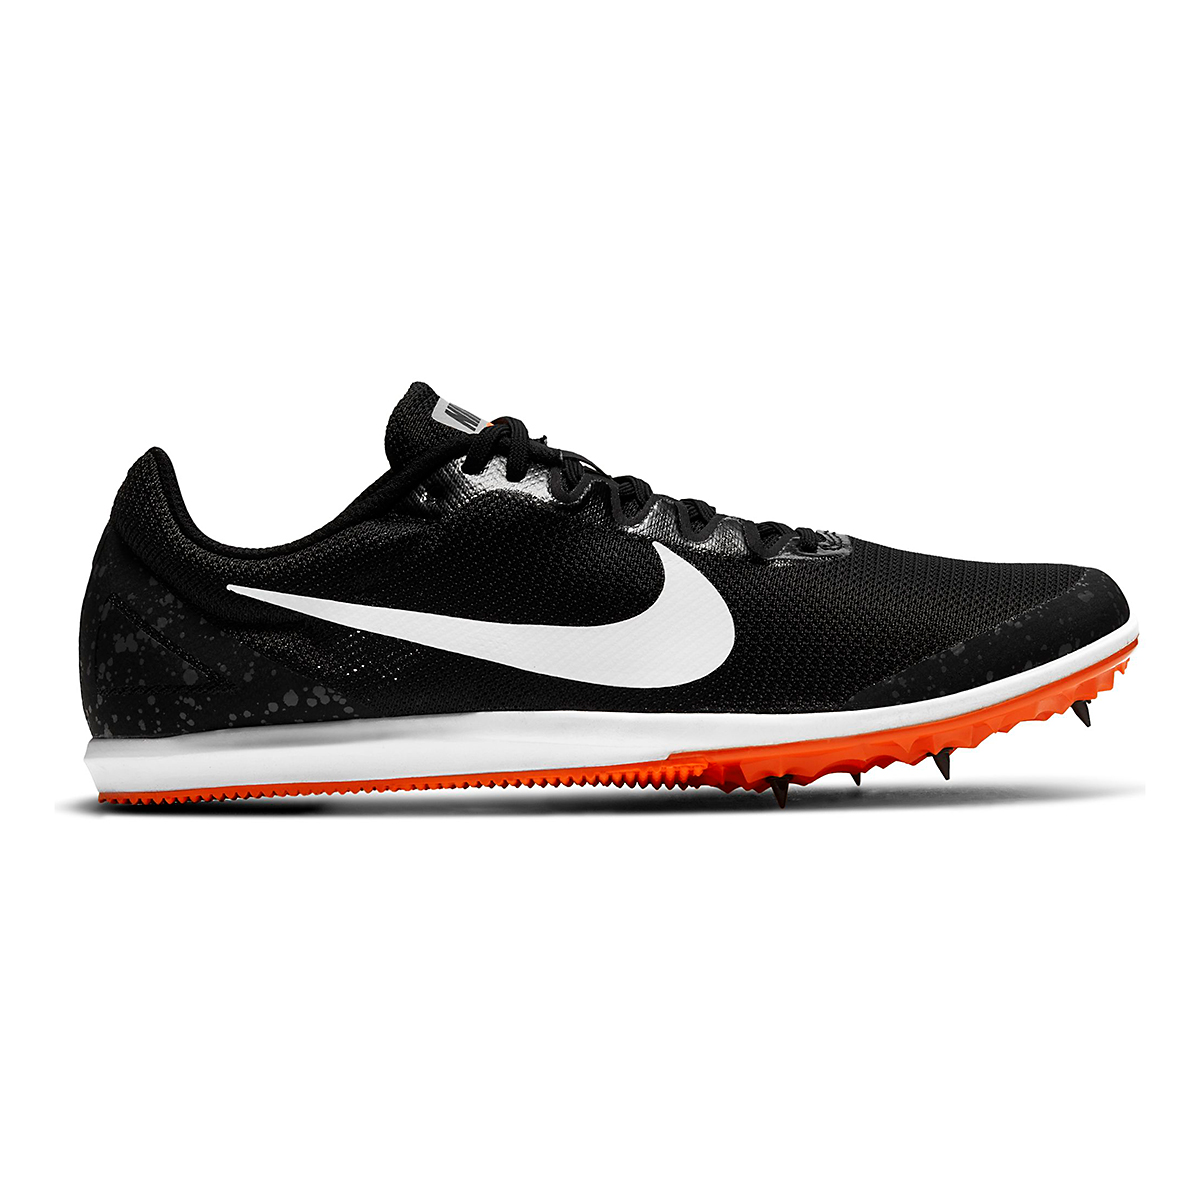 Nike Zoom Rival D 10 Track Spikes - Color: Black/White/Iron Grey/Hyper Crimson - Size: M4/W5.5 - Width: Regular, Black/White/Iron Grey/Hyper Crimson, large, image 1